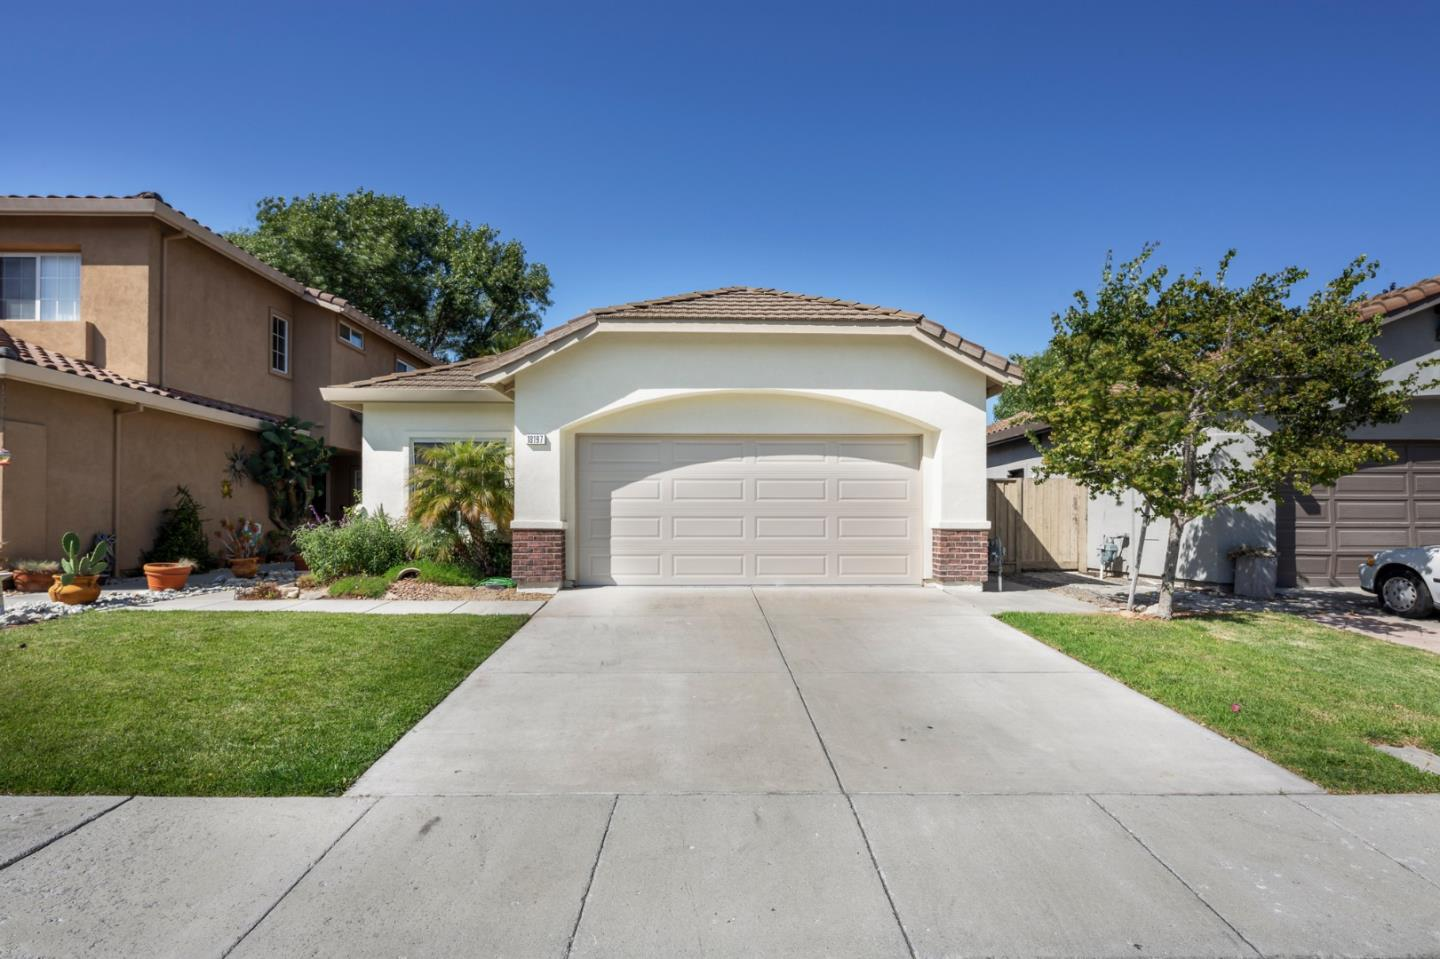 Detail Gallery Image 1 of 24 For 18197 Stonegate Ct, Salinas, CA 93908 - 3 Beds | 2 Baths